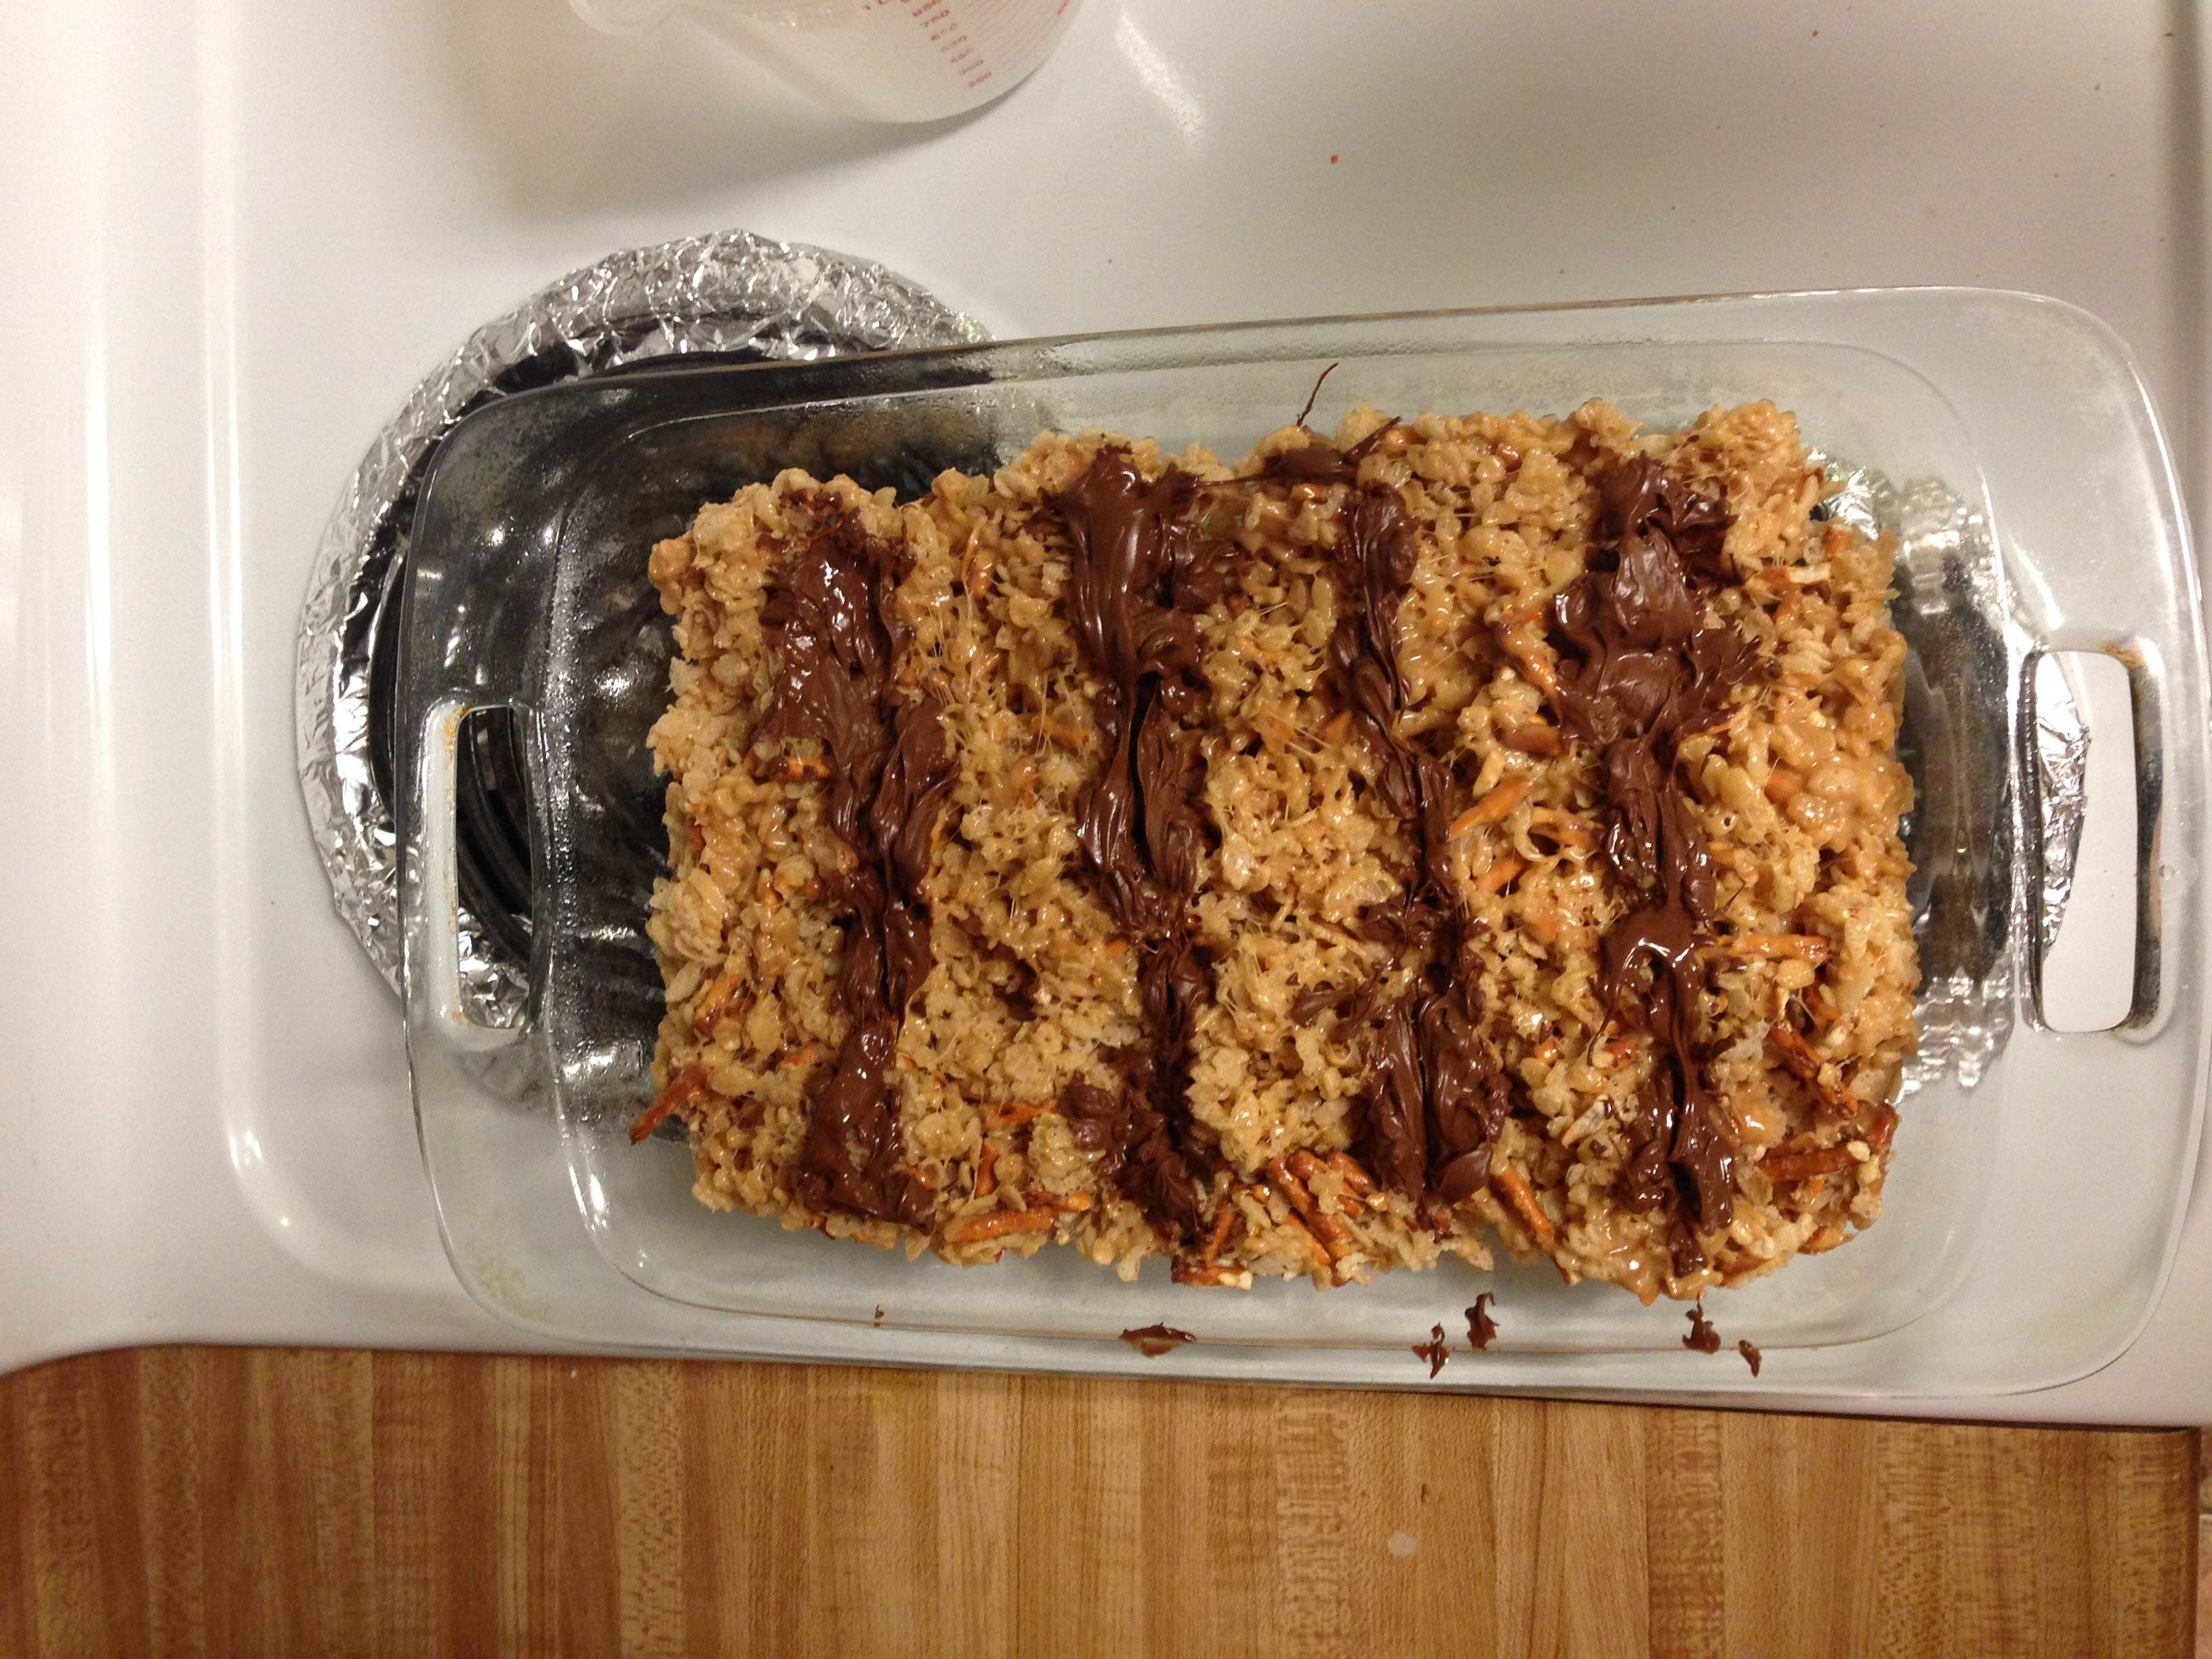 Picture of How- to Make Peanut Butter Chocolate Pretzel Rice Crispy Treats